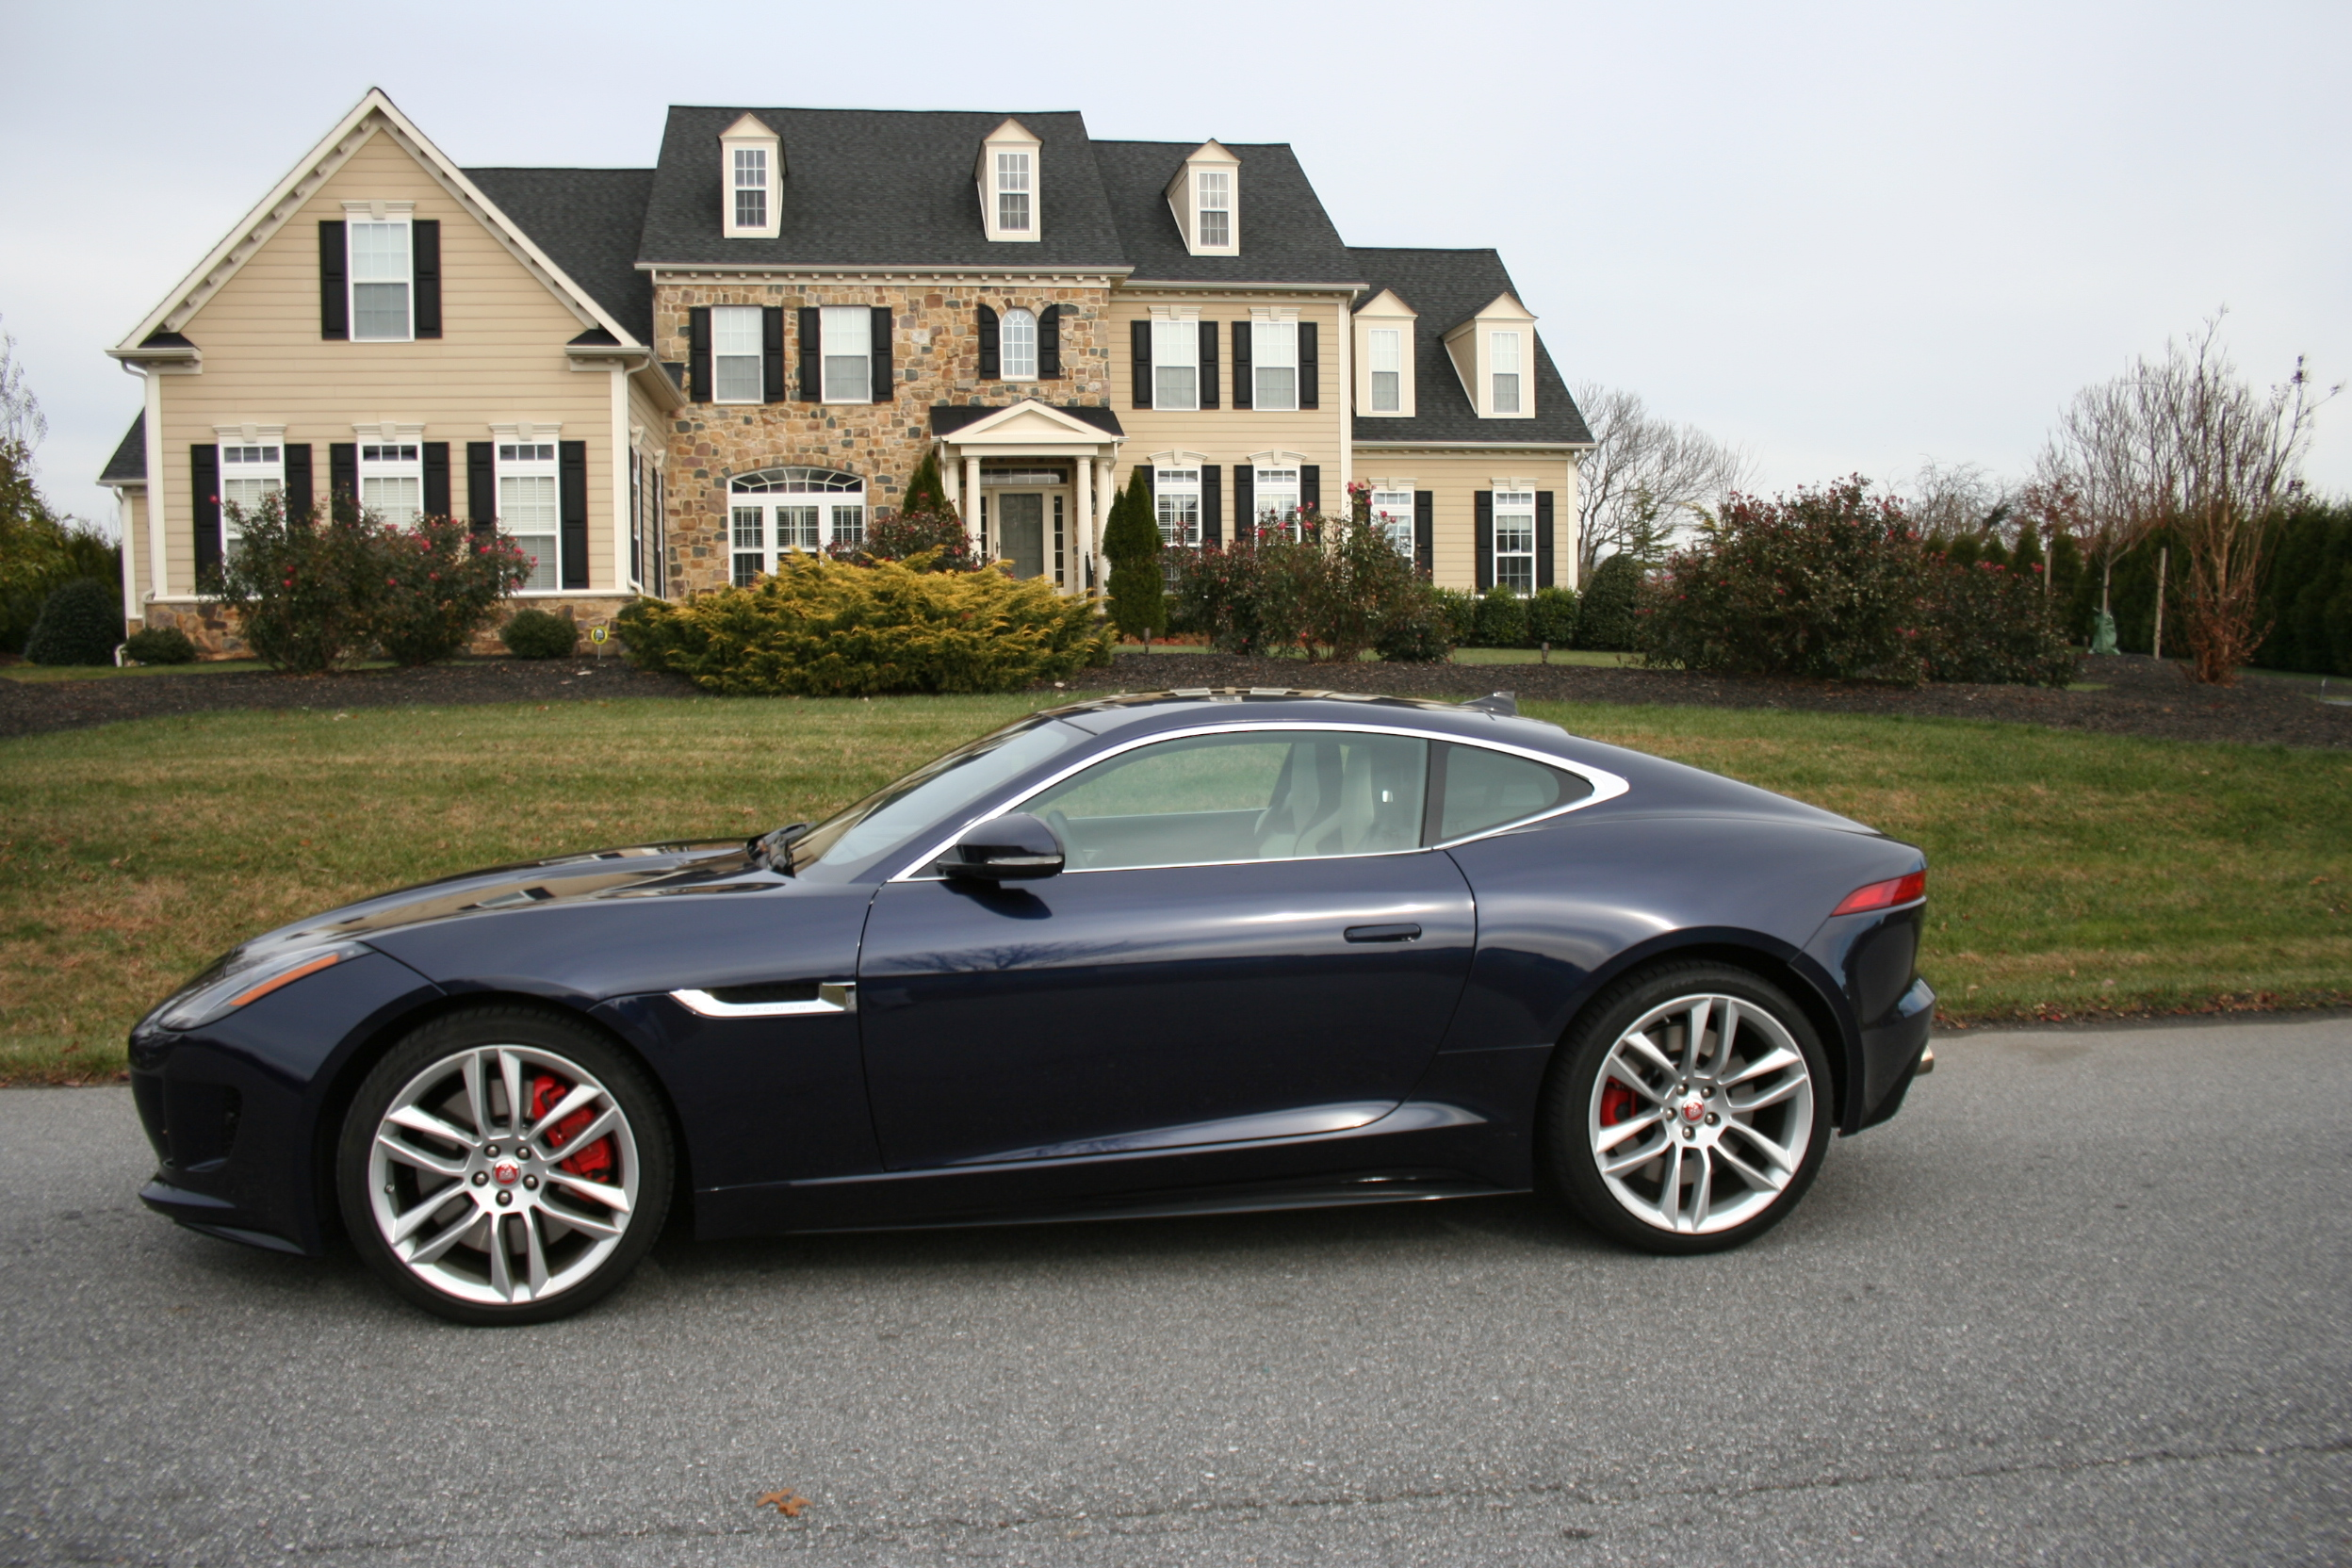 Car Report: All I want for Christmas is a new Jaguar Coupe